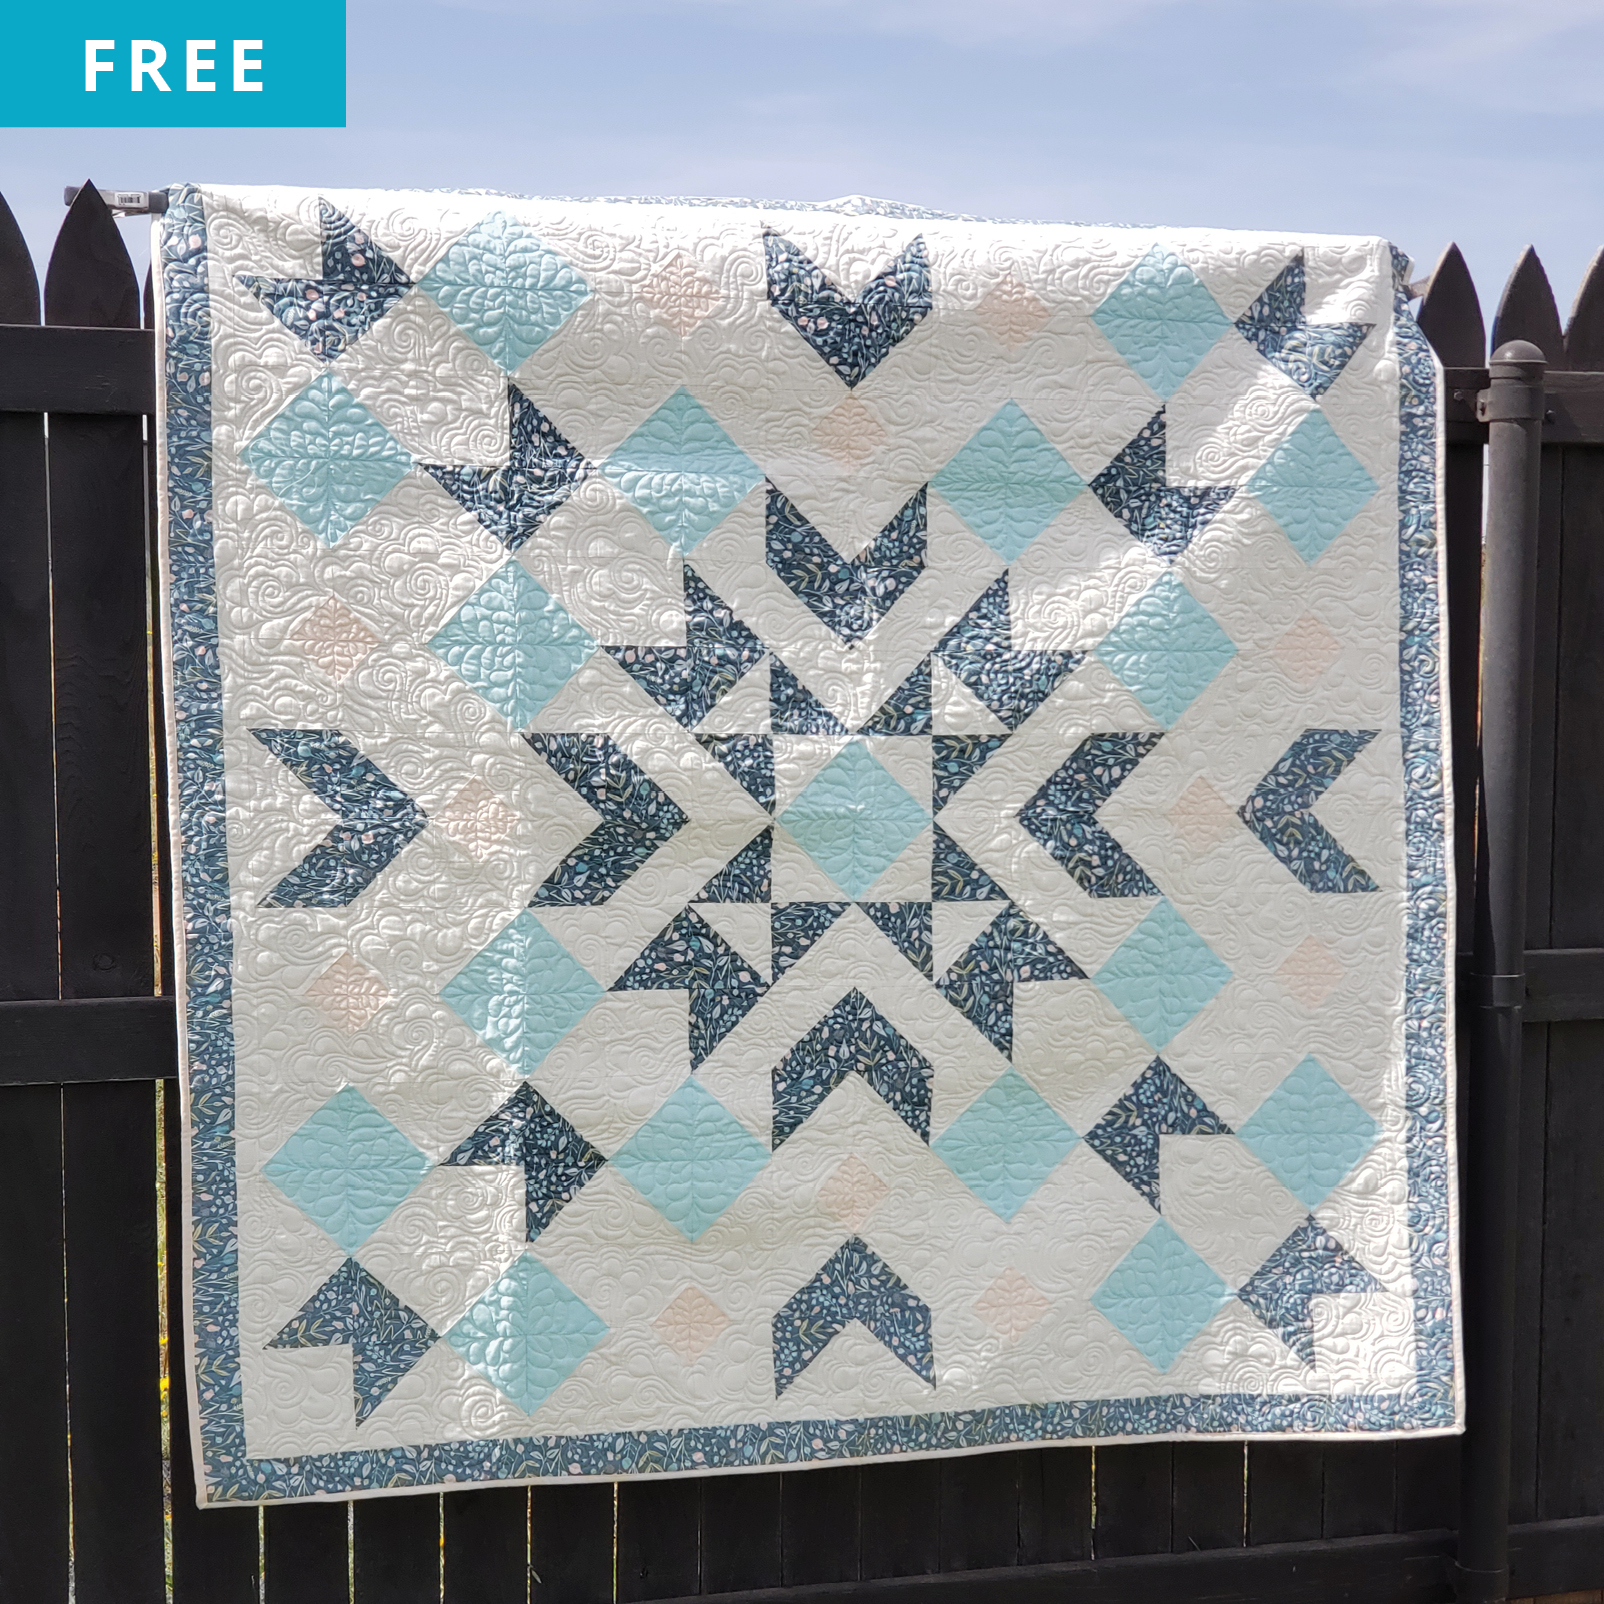 Free Quilt Pattern - Country Star Quilt